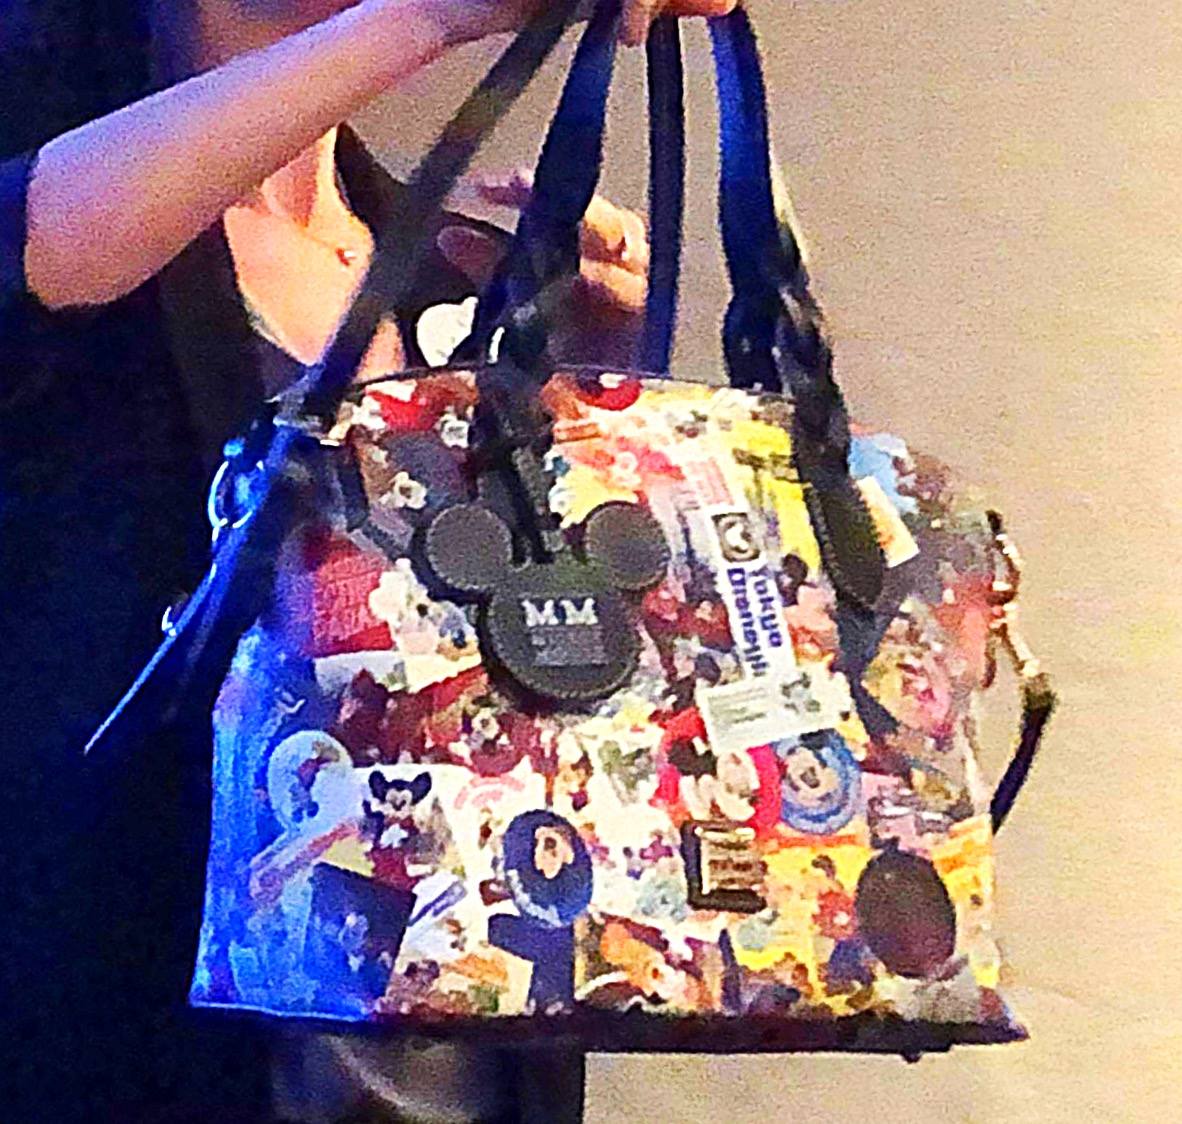 Sneak peek of New Dooney and Bourke Mickey Collage Through The Years Bags #disneystyle 2